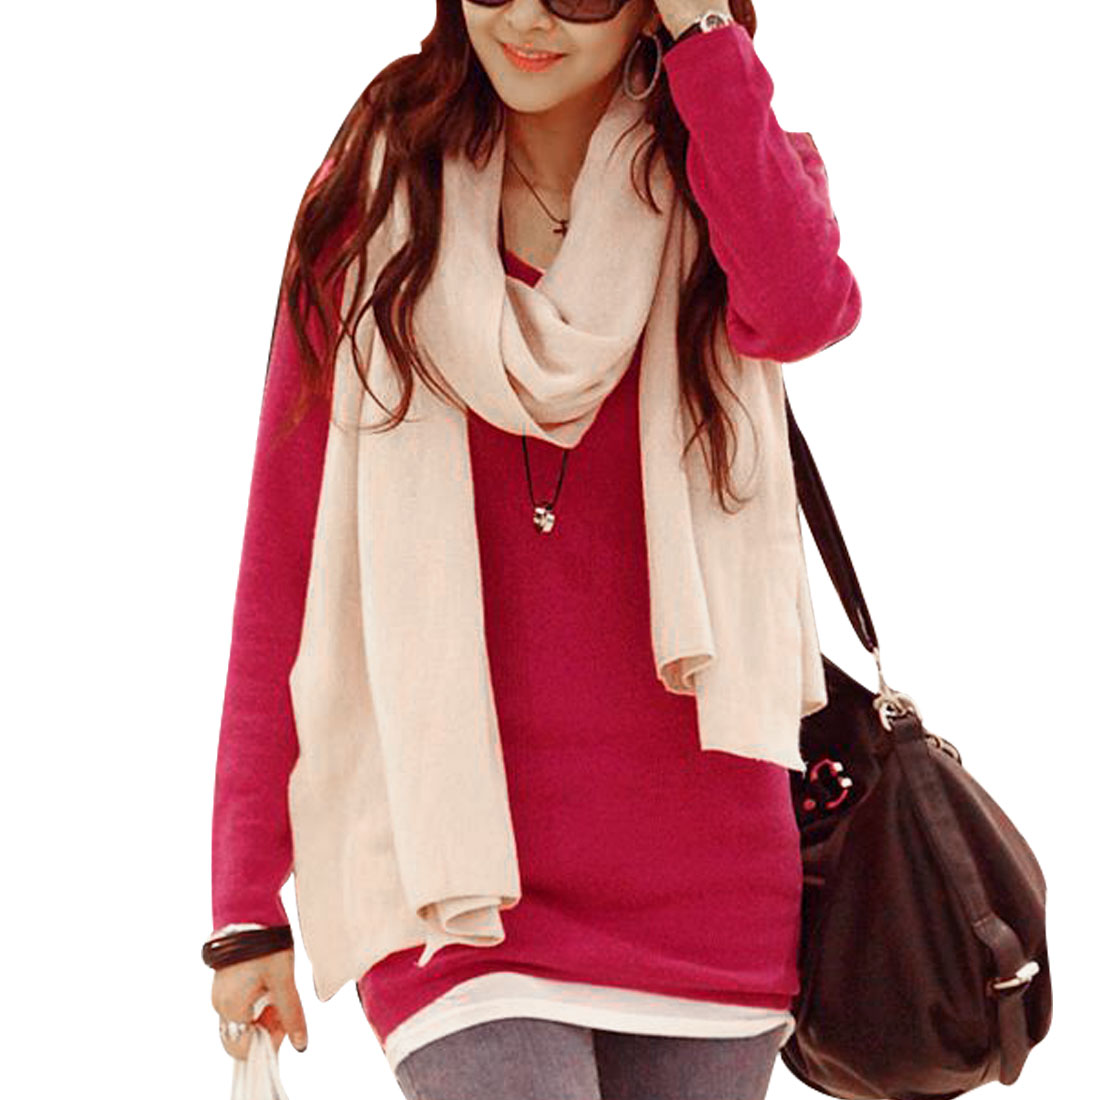 Women XS Fuchsia Long Sleeve Solid Color V Neck Design Slim Fit Tunic Shirt